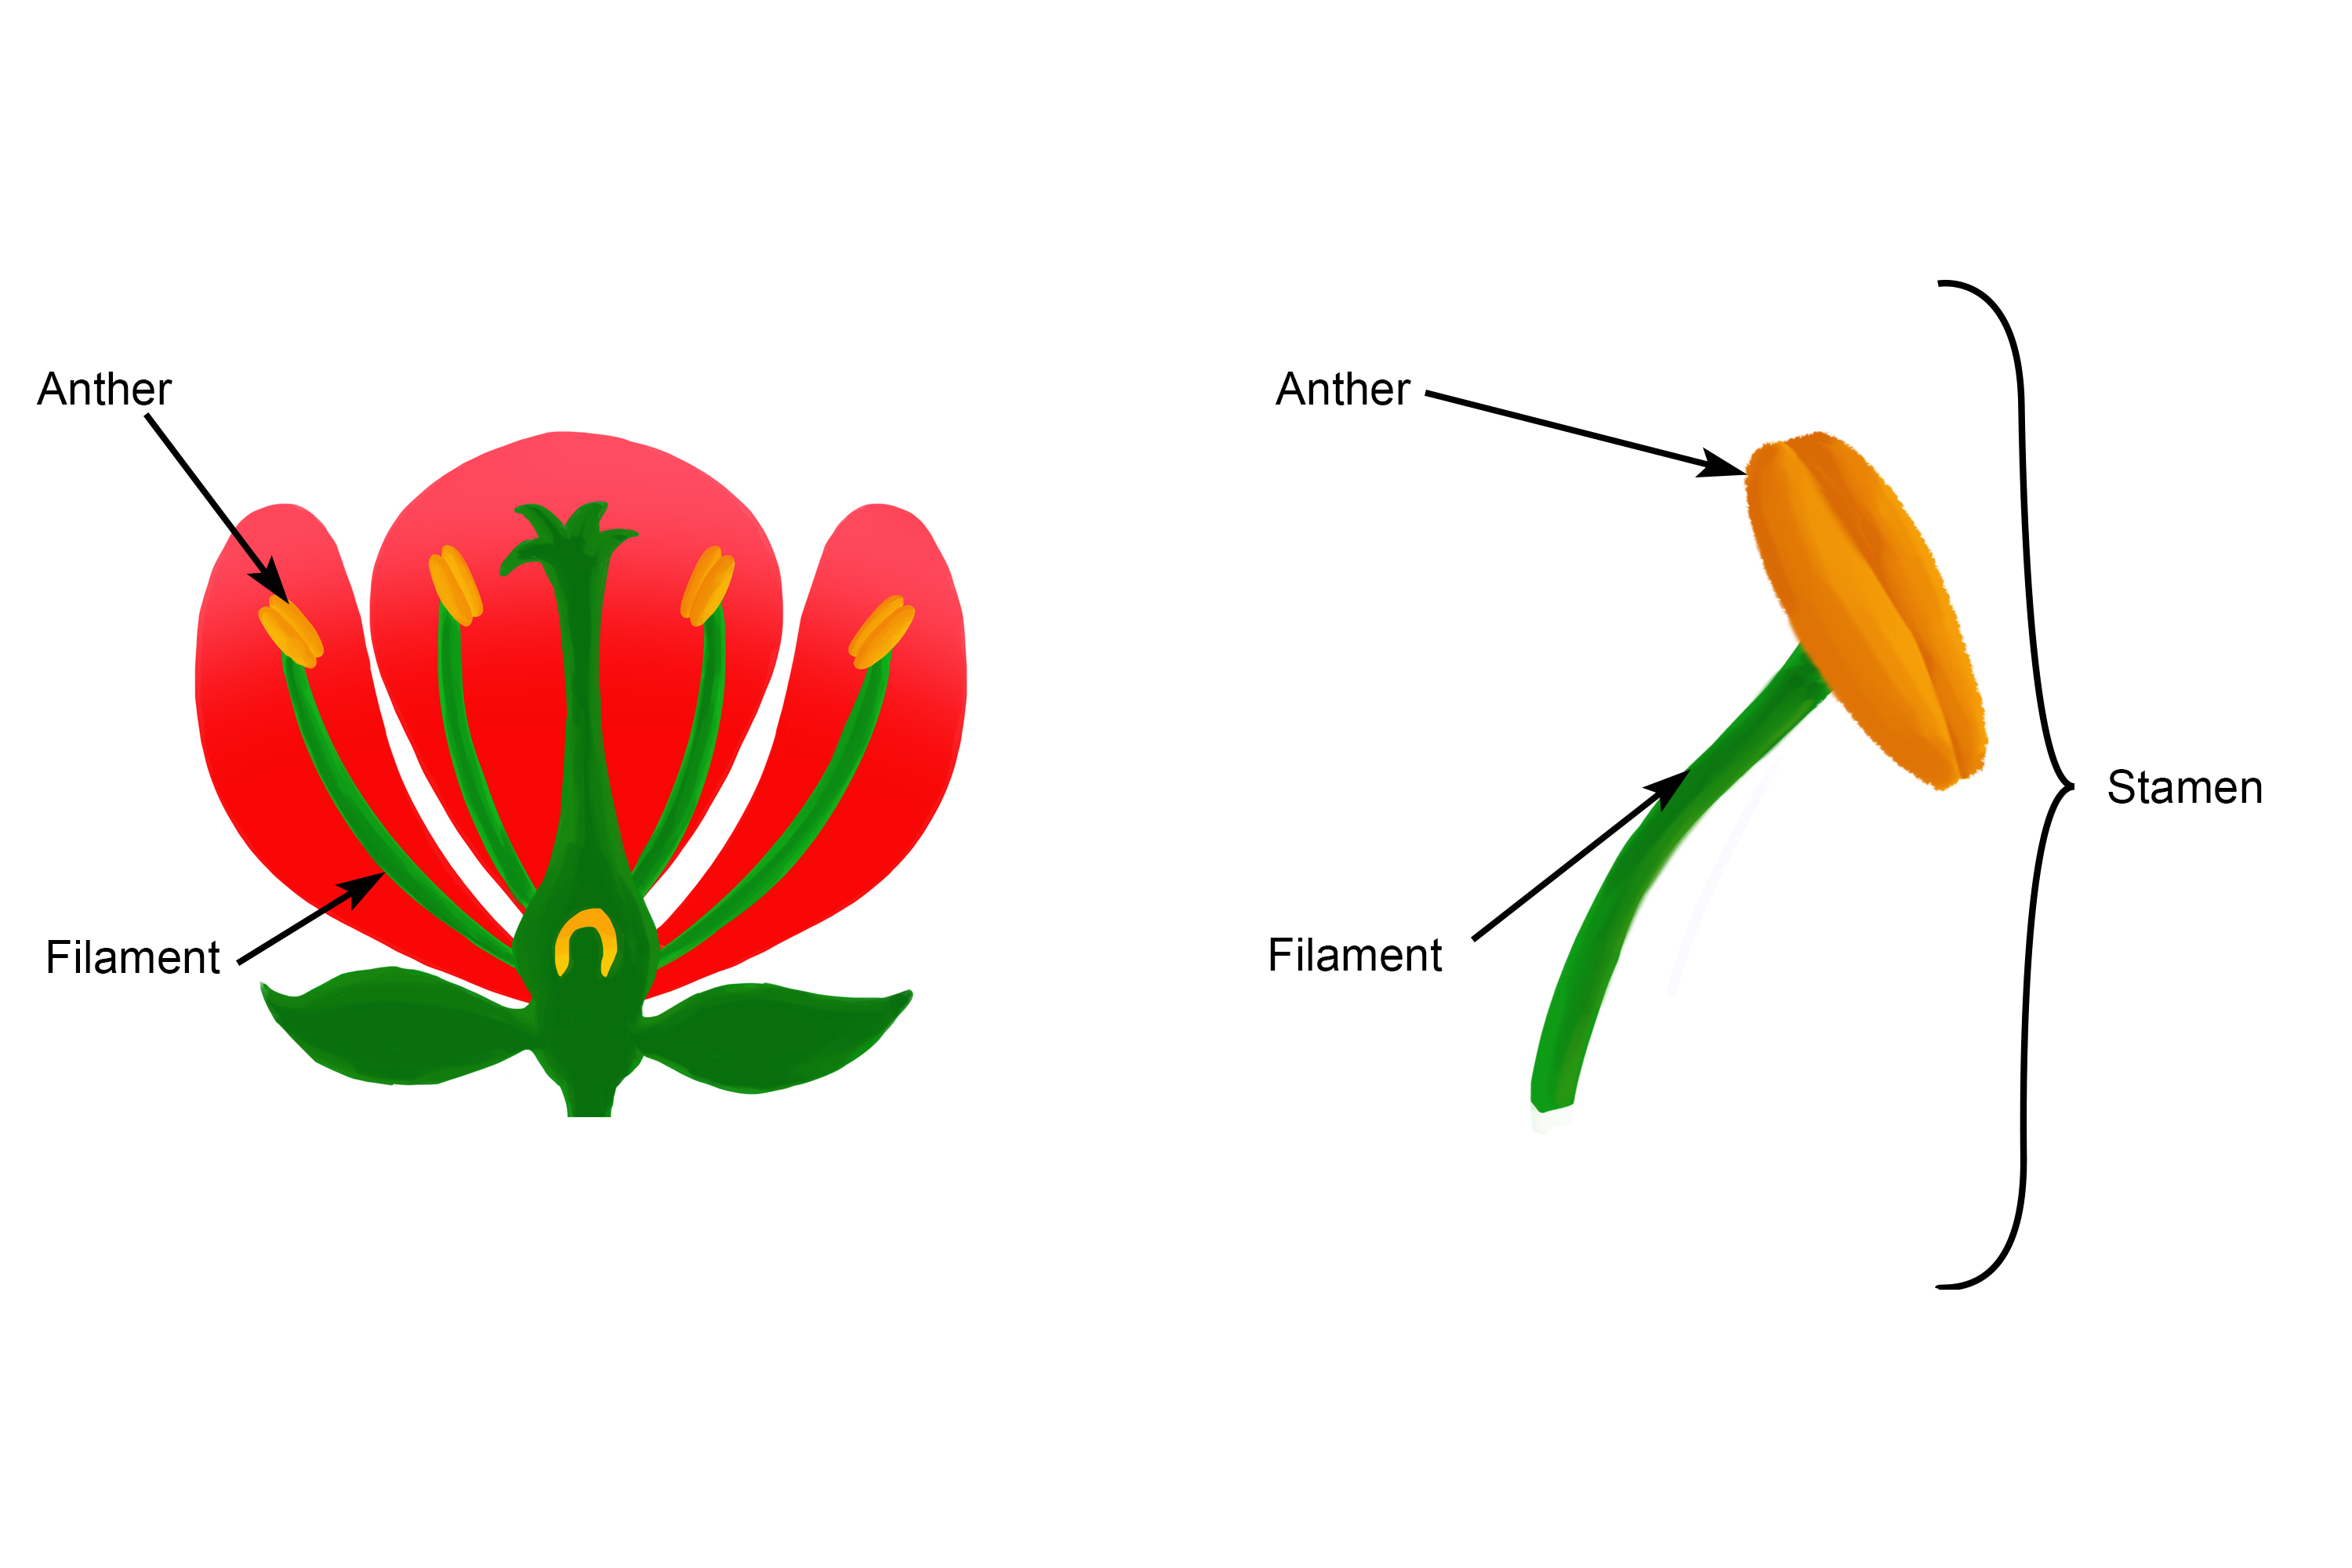 The anther is part of the male reproductive organ that is part of the stamen